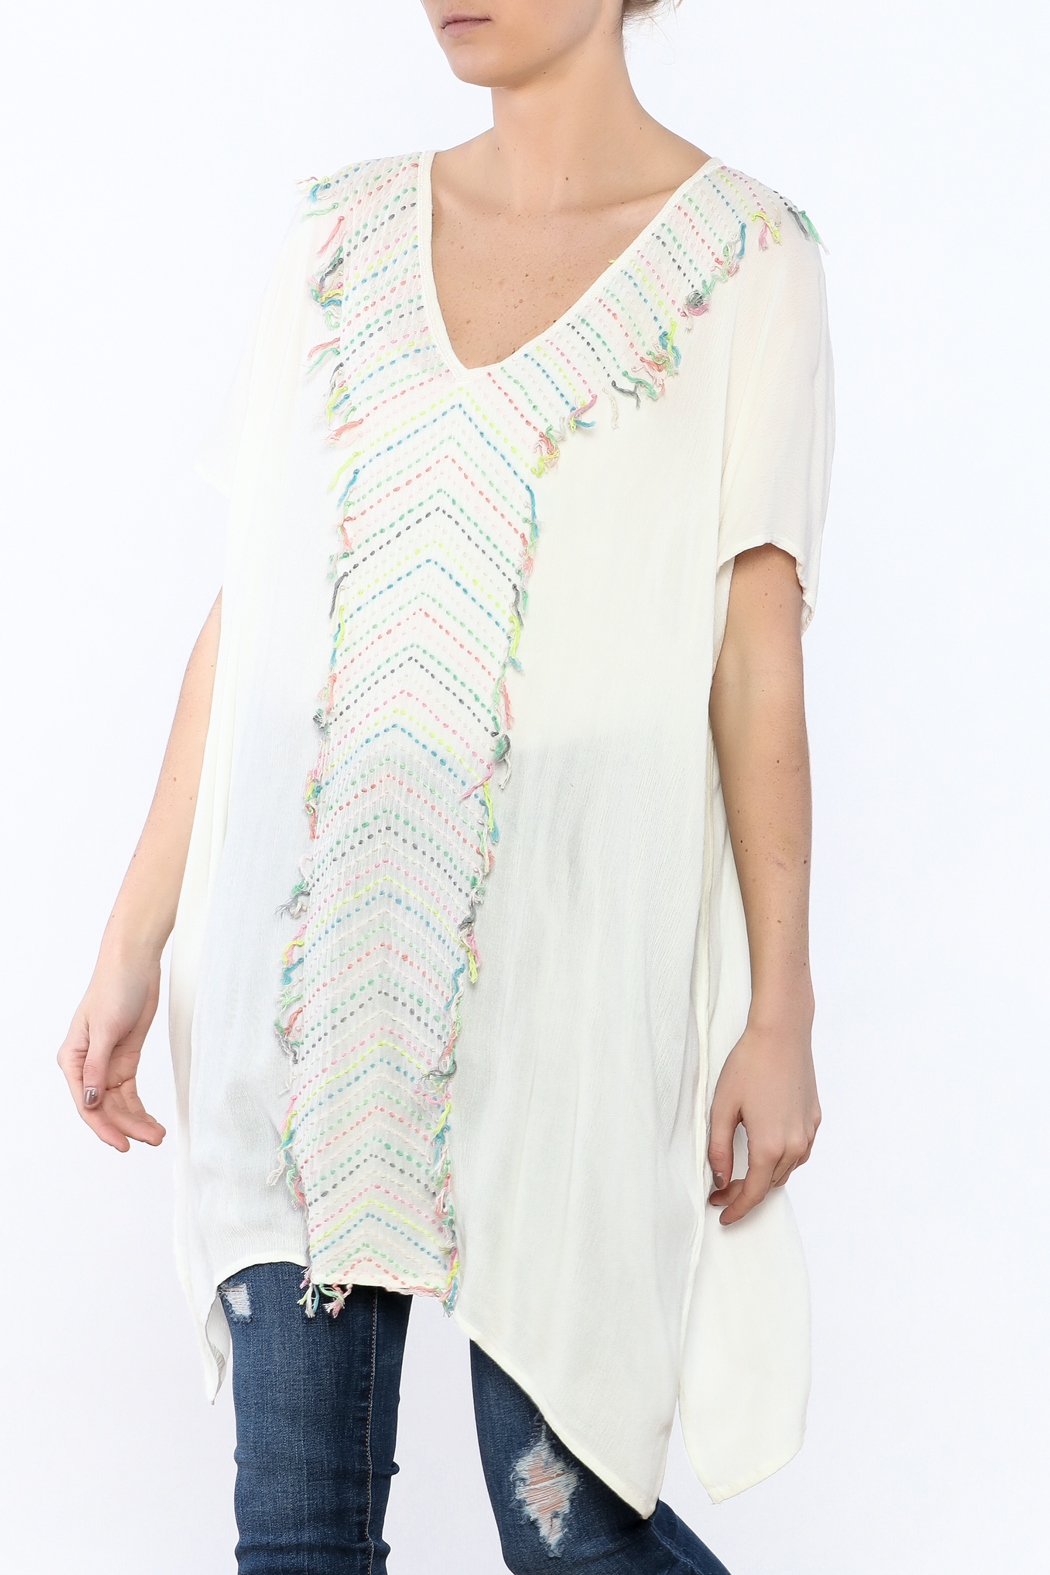 Z&L Europe Ombre Pompom Tunic Top - Main Image